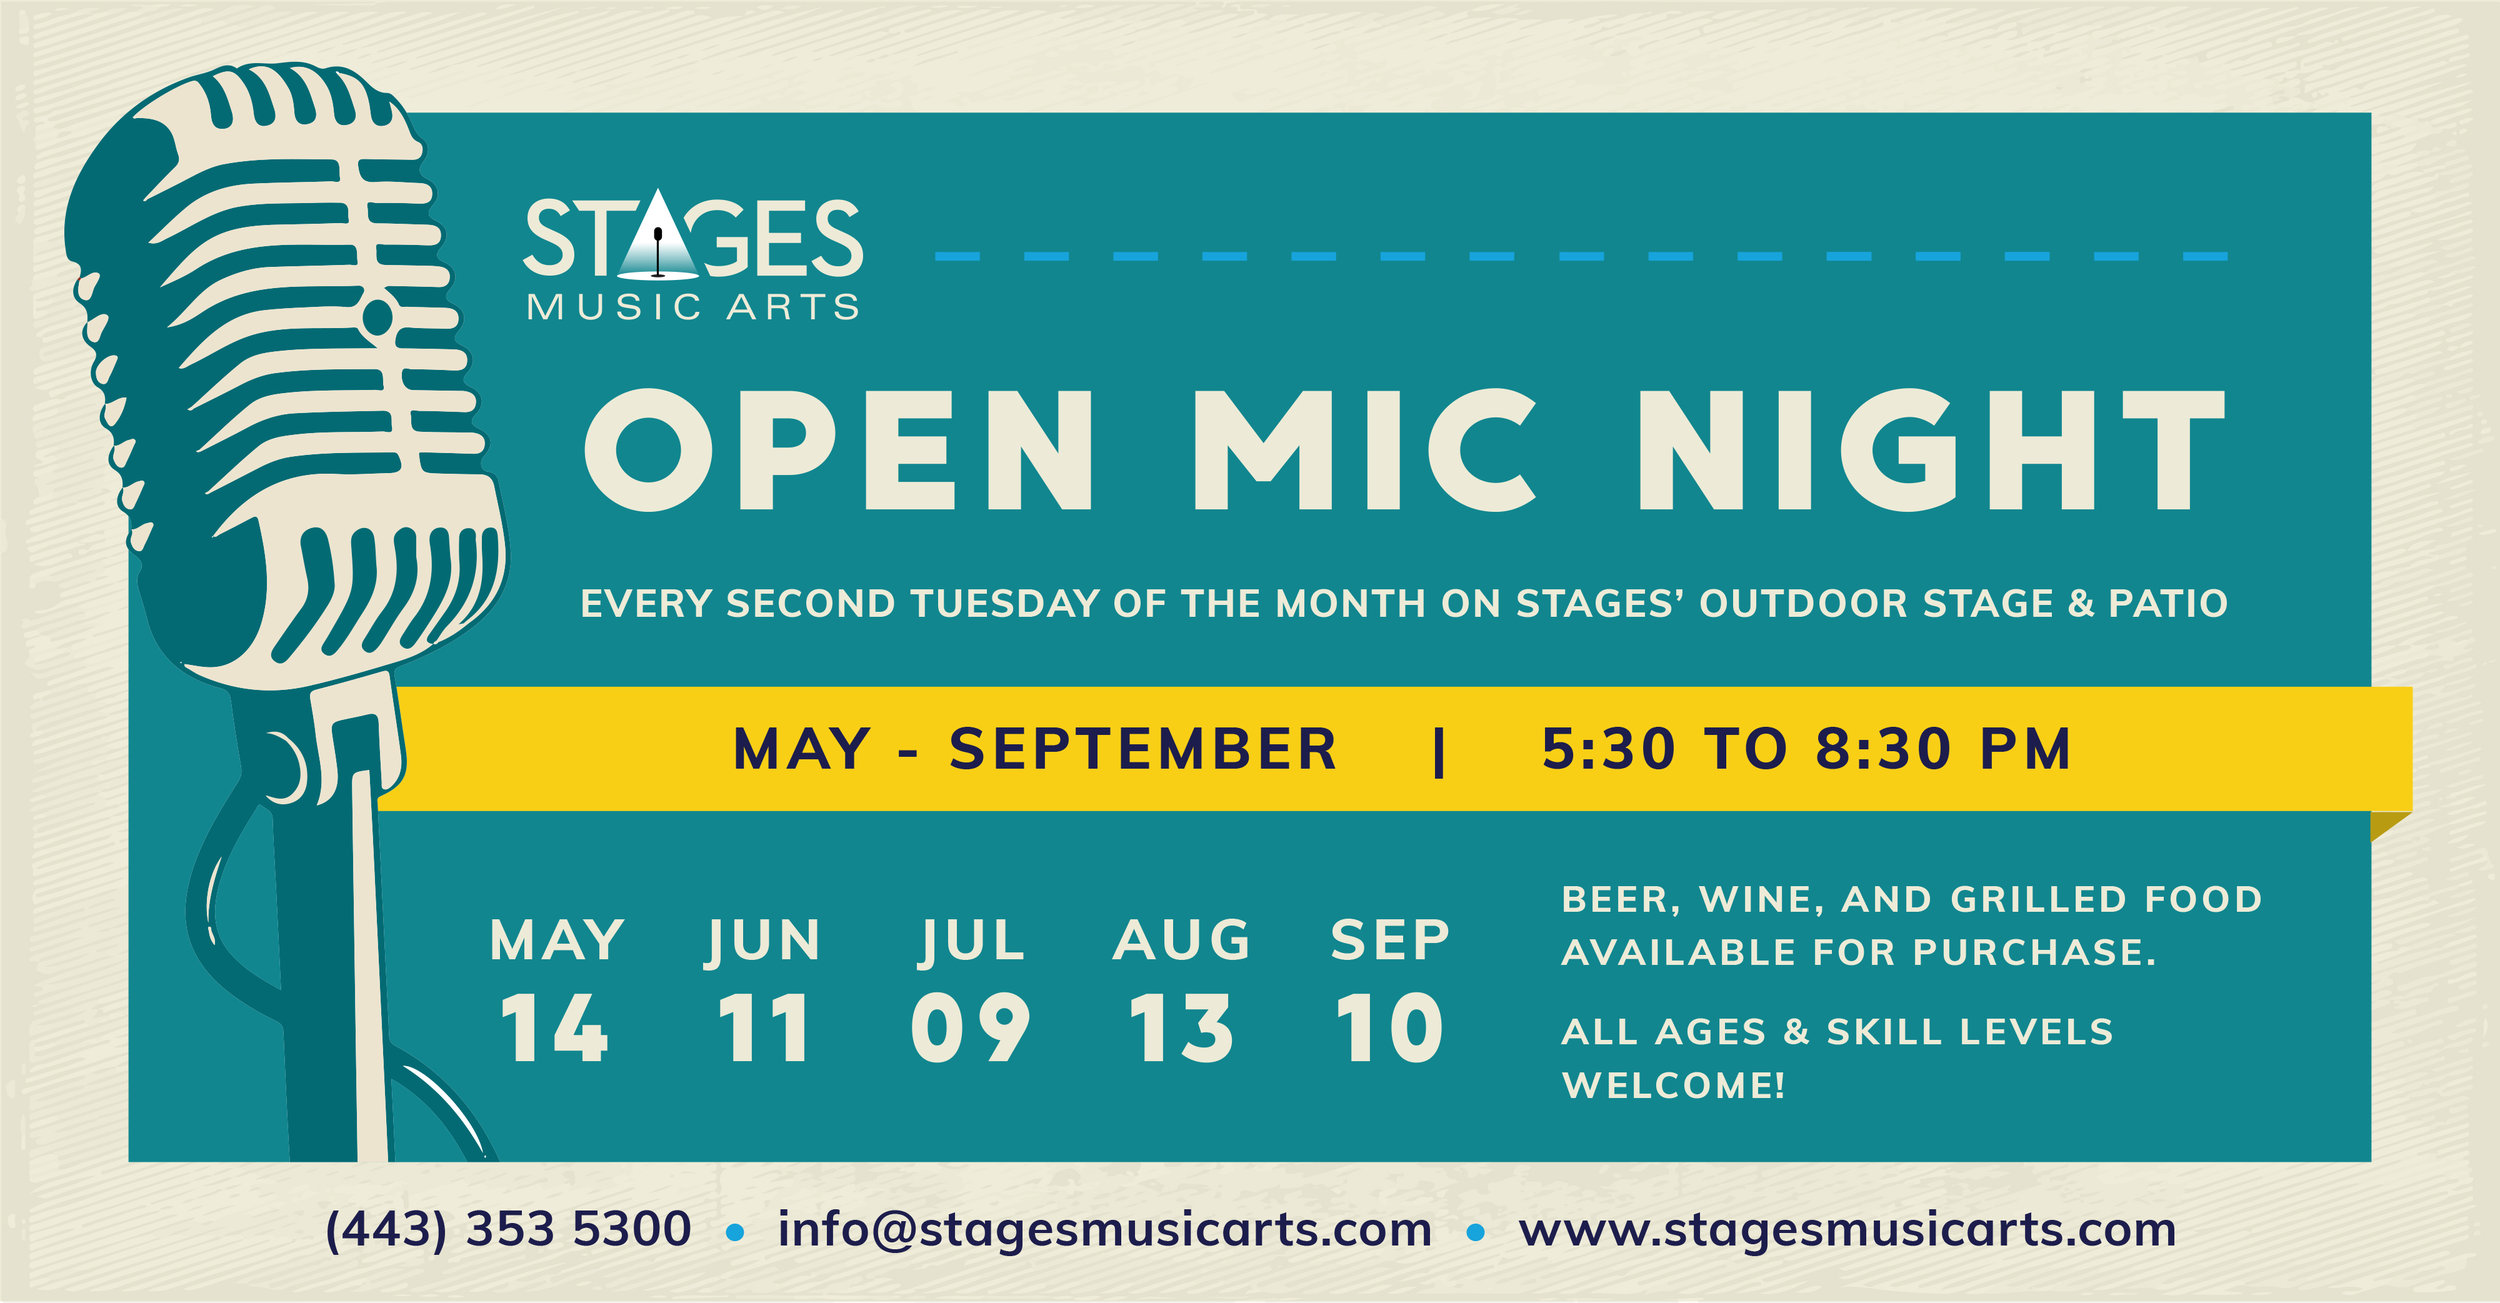 Open Mic Night Series - Join us every second Tuesday of the month May – September for an open mic on our outdoor stage and patio! Sponsored by Believe in Music, a Baltimore nonprofit dedicated to empowering youth through music education.